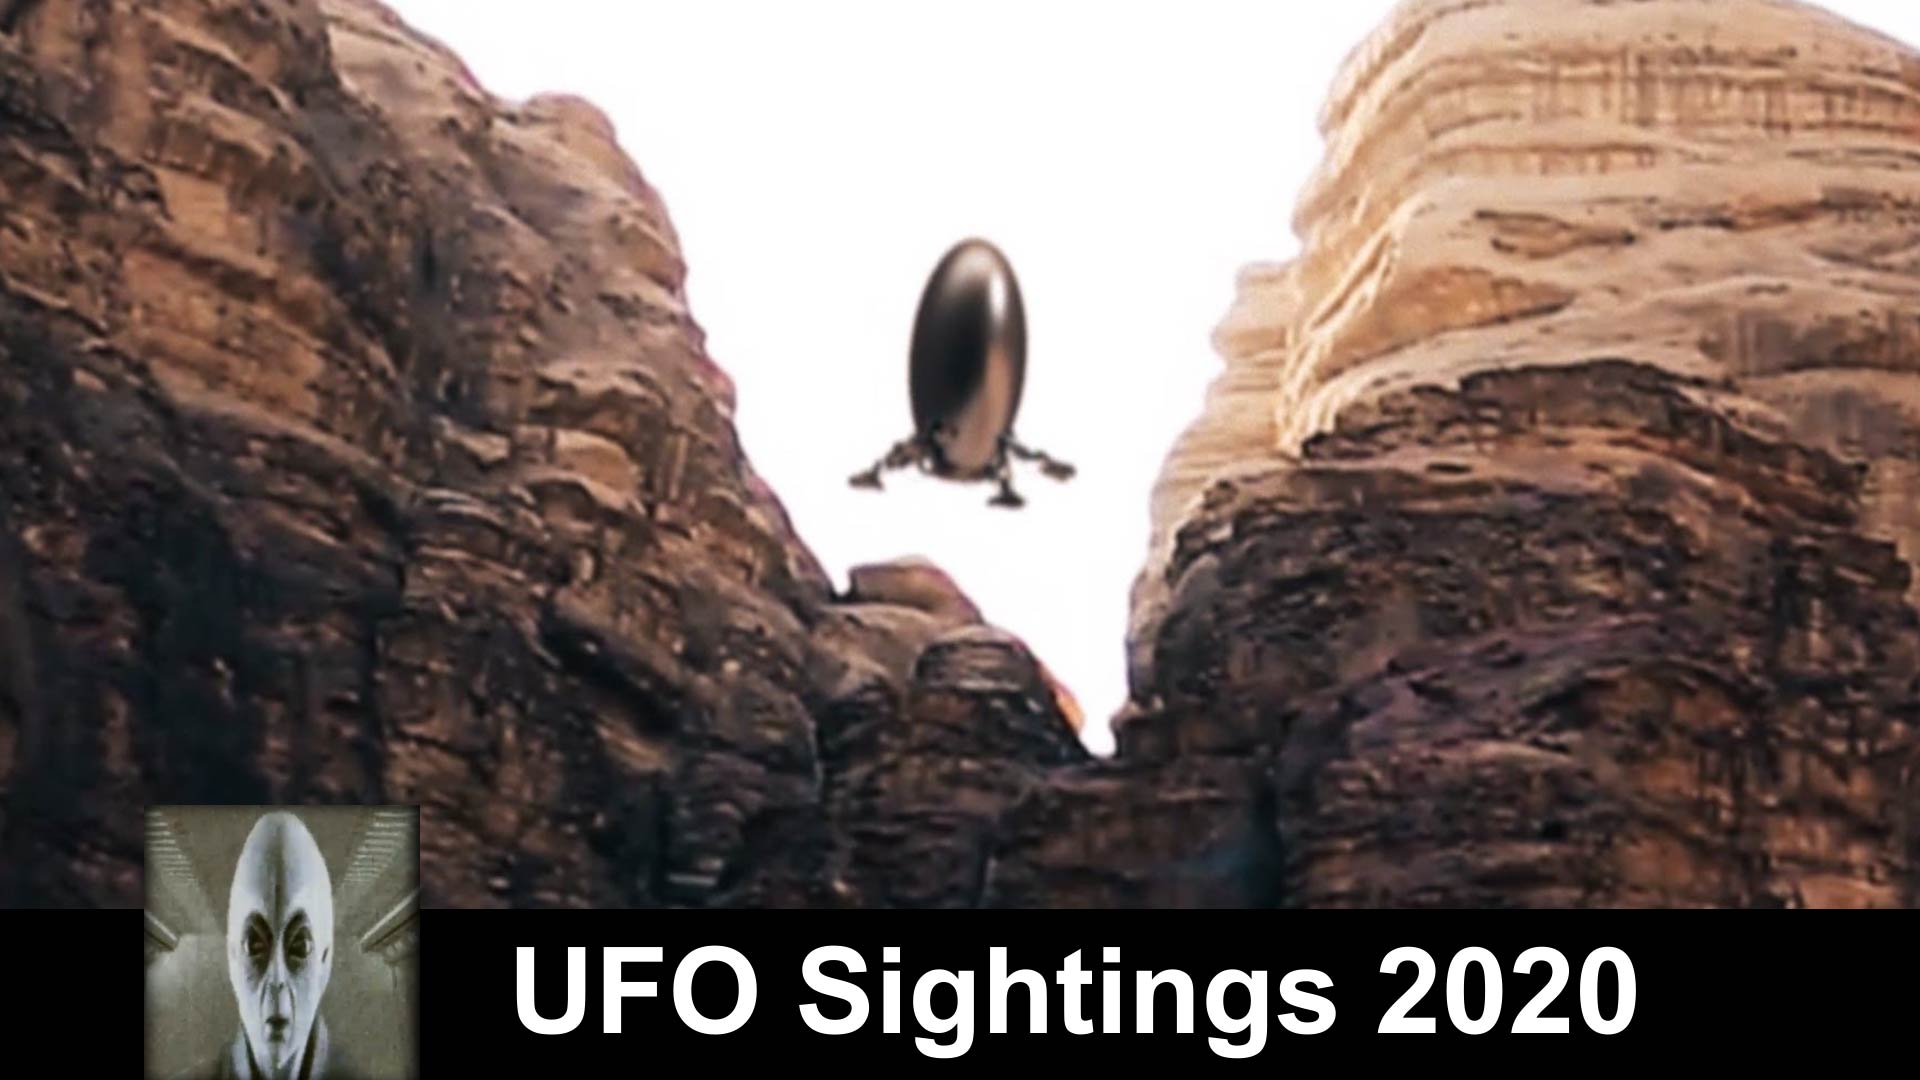 Reverse Alien Technology They Are Testing This UFO